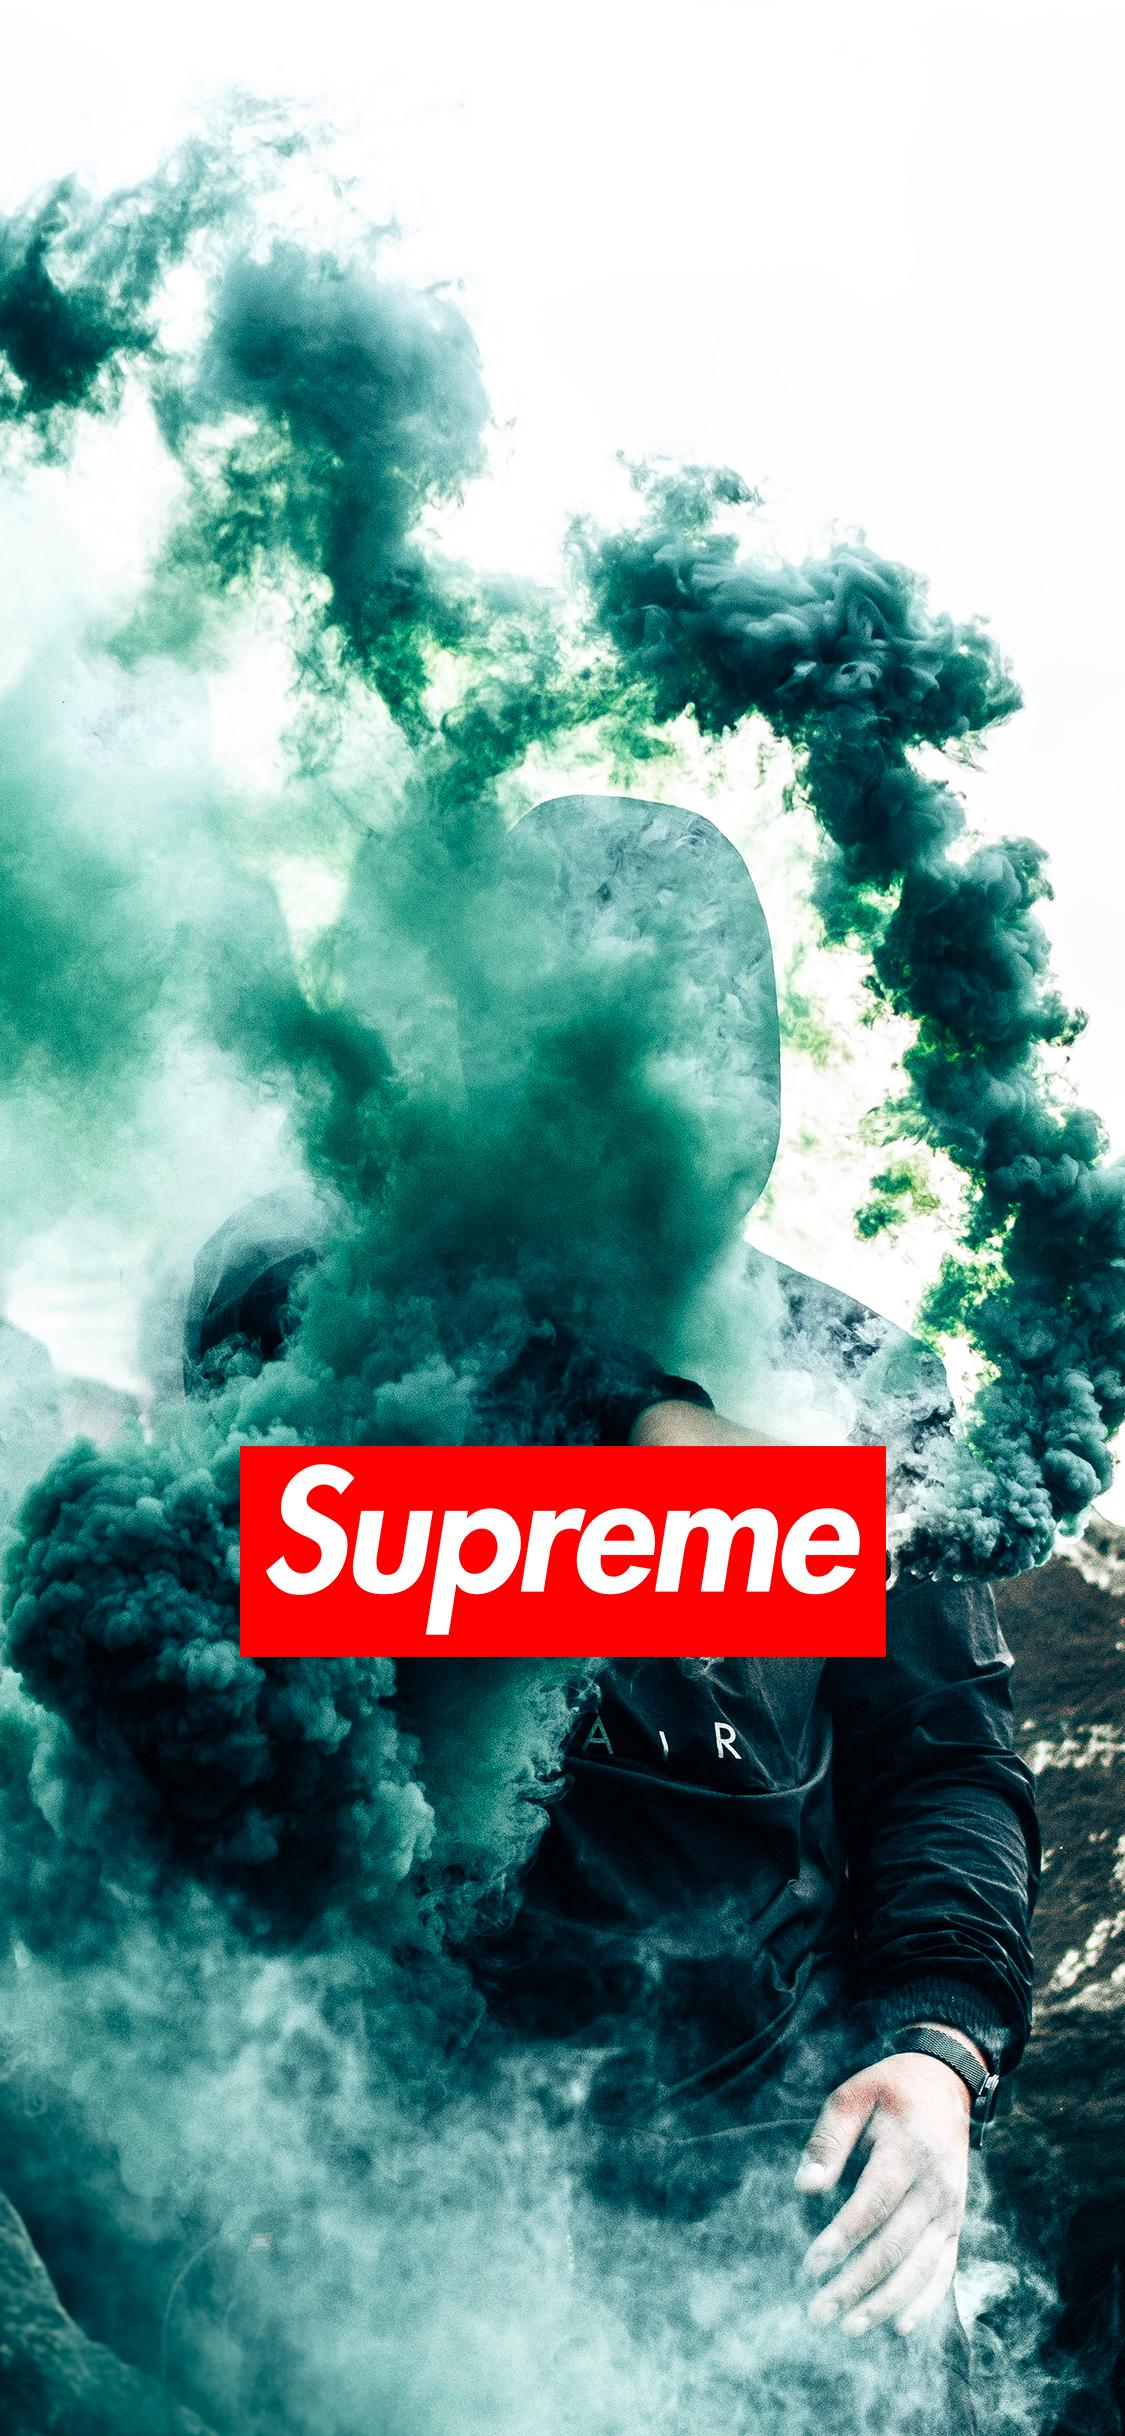 Supreme Wallpaper For Iphone Posted By Ryan Thompson